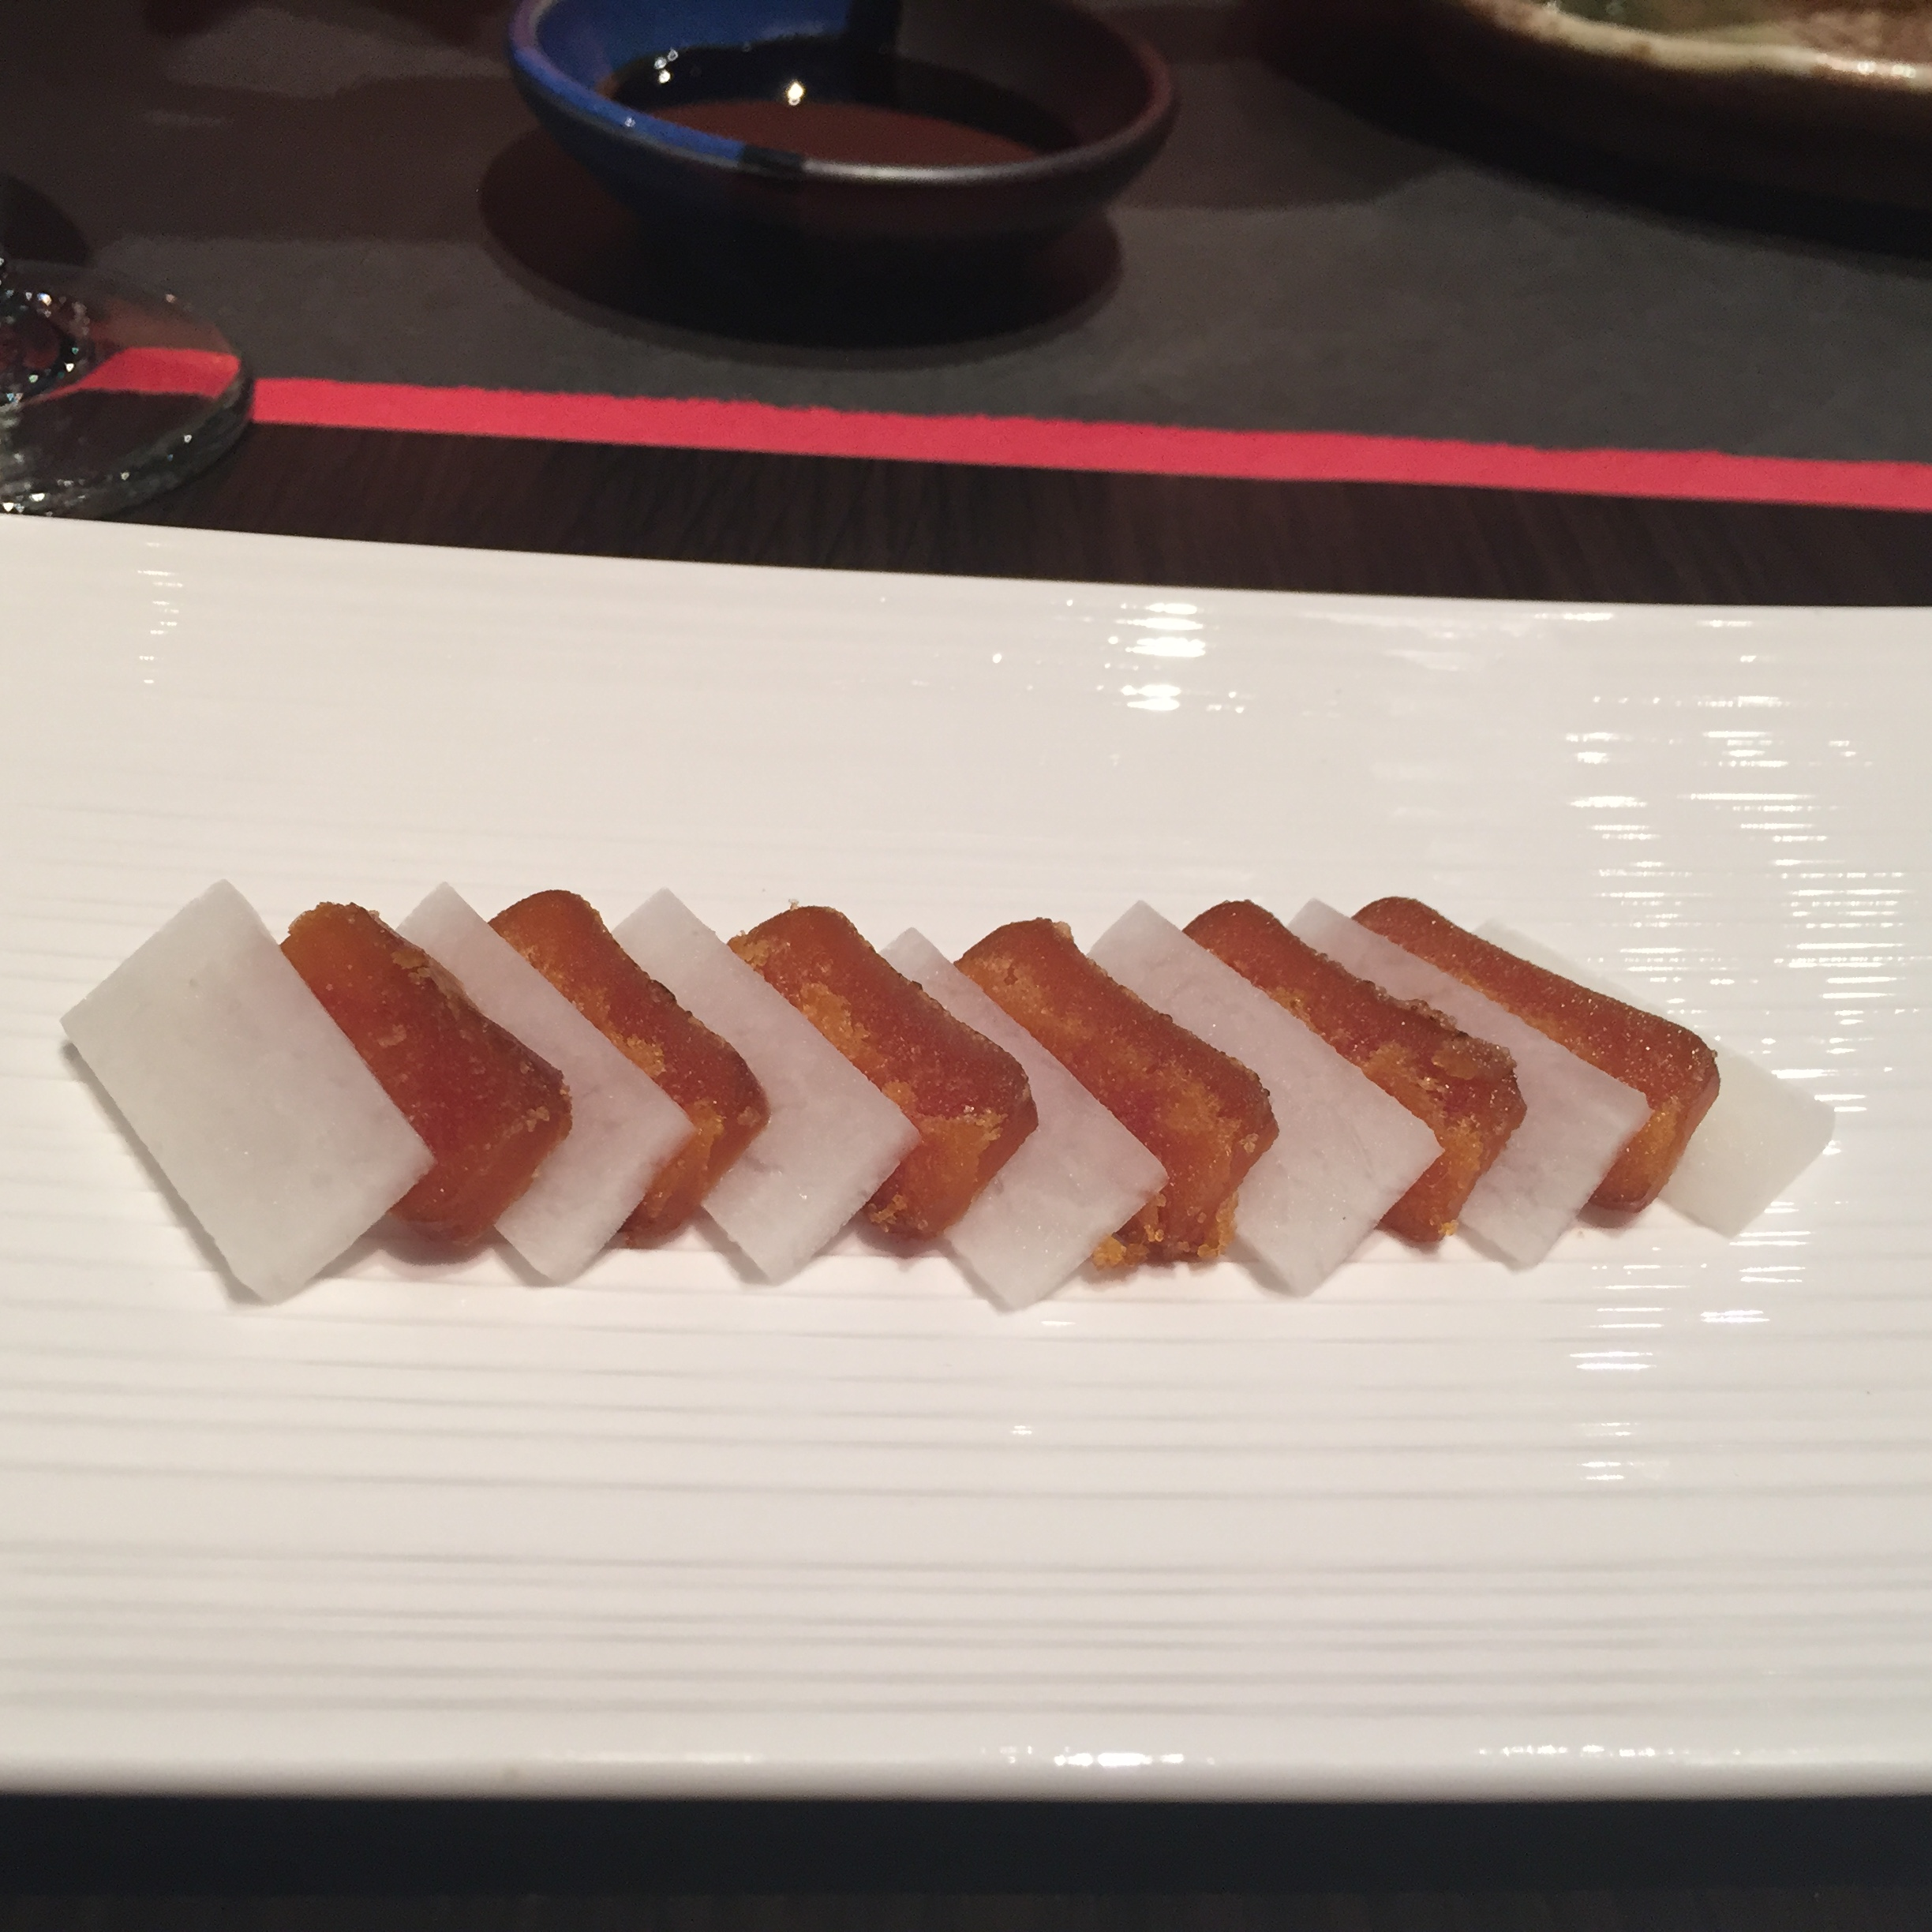 Karasumi pressed pickled striped mullet eggs and daikon. This is very rare to find outside of Japan.